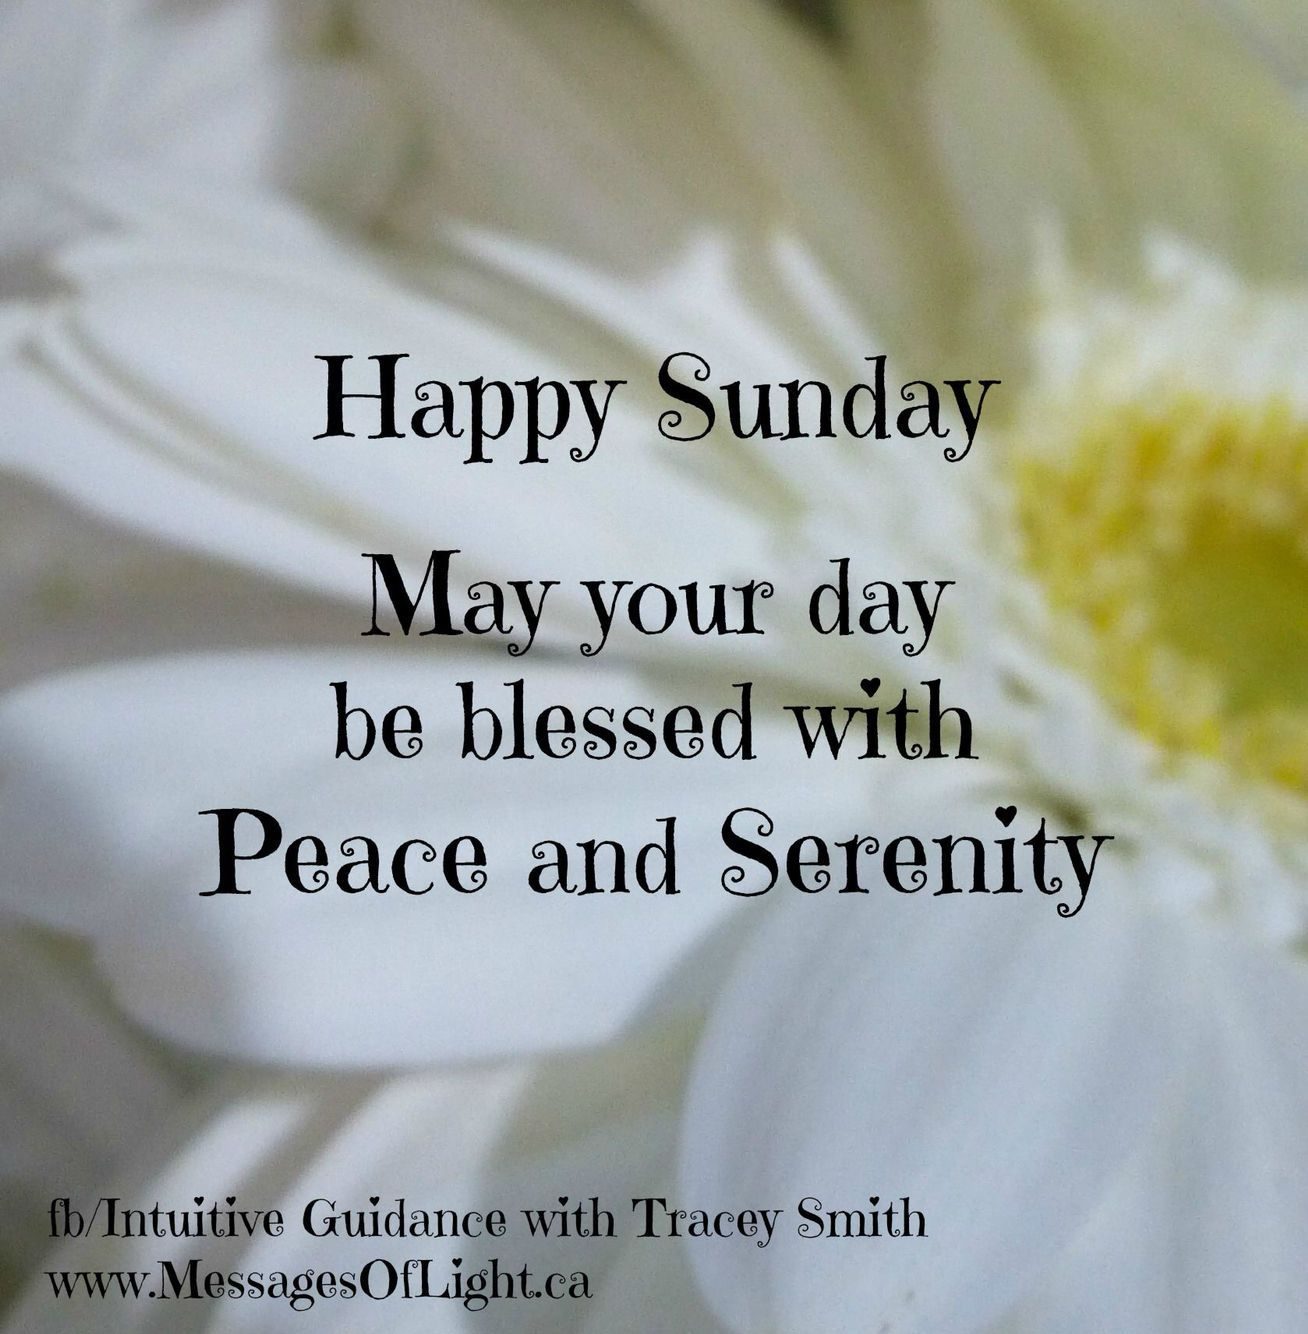 Good Morning And Happy Sunday Text : Happy sunday may your day be blessed quotes